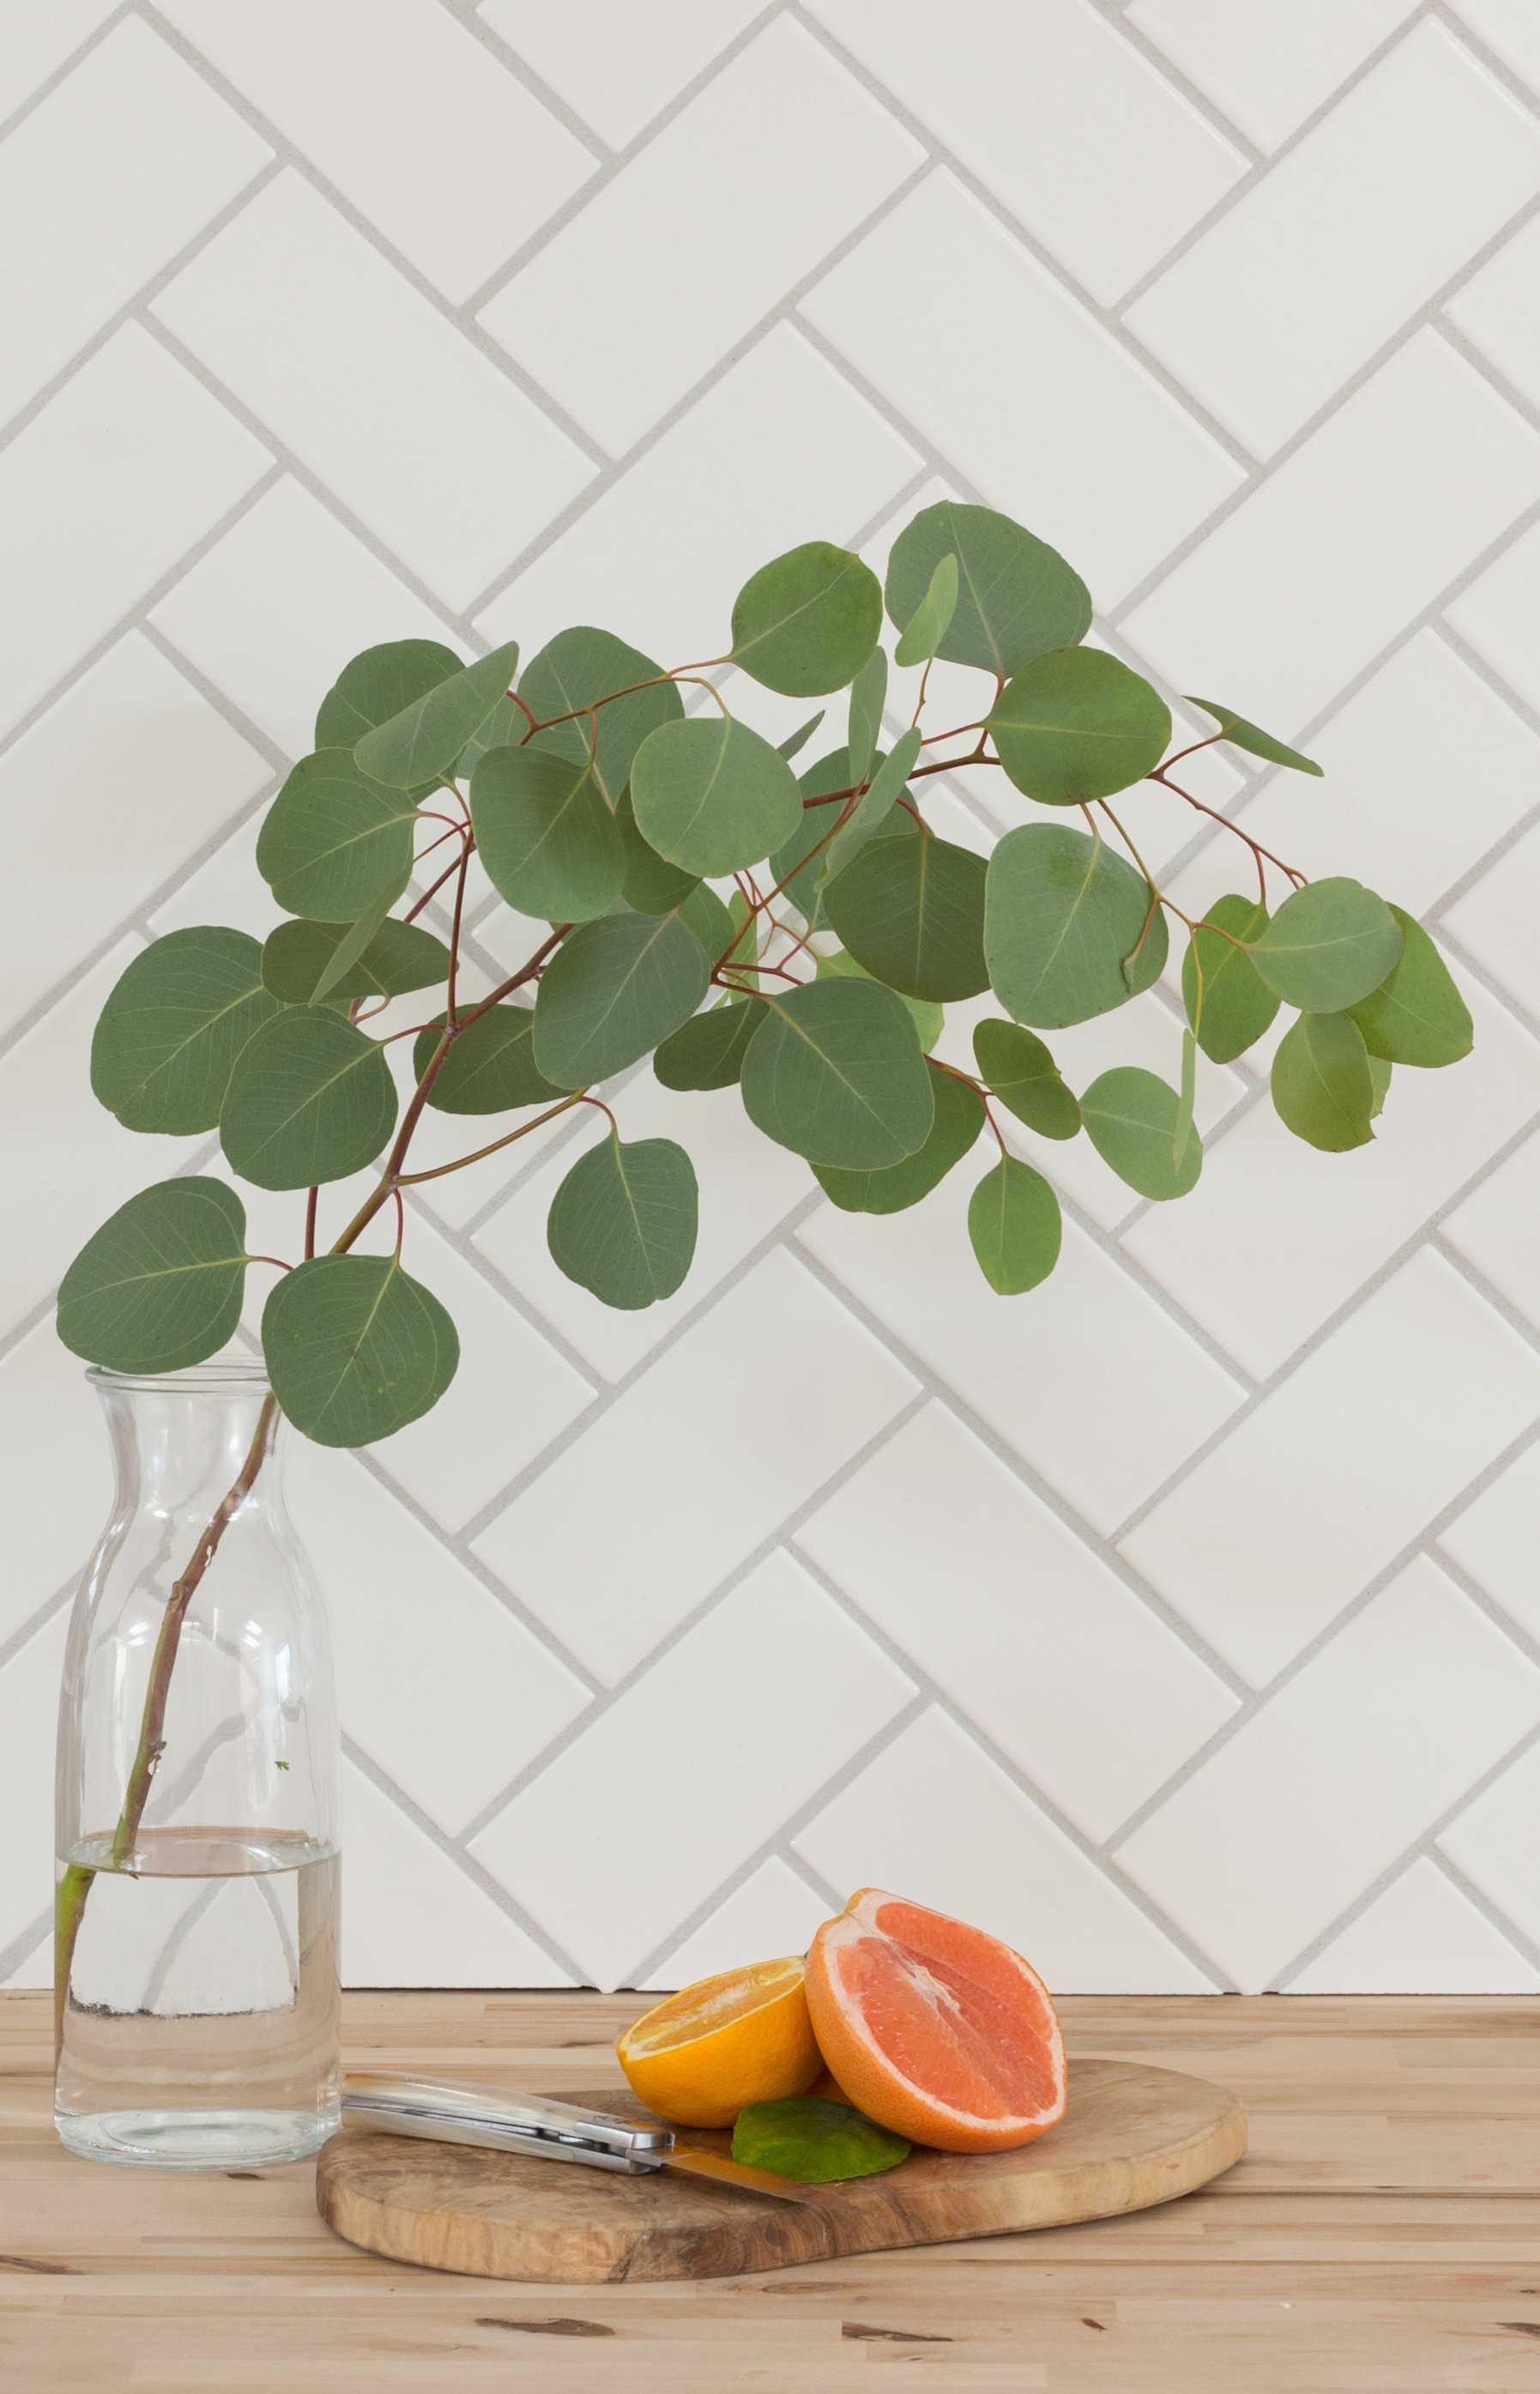 2017_q3_image_scandinavian_summer_calcite_3x6_backsplash_grapefruit_eucalyptus_crop.jpg